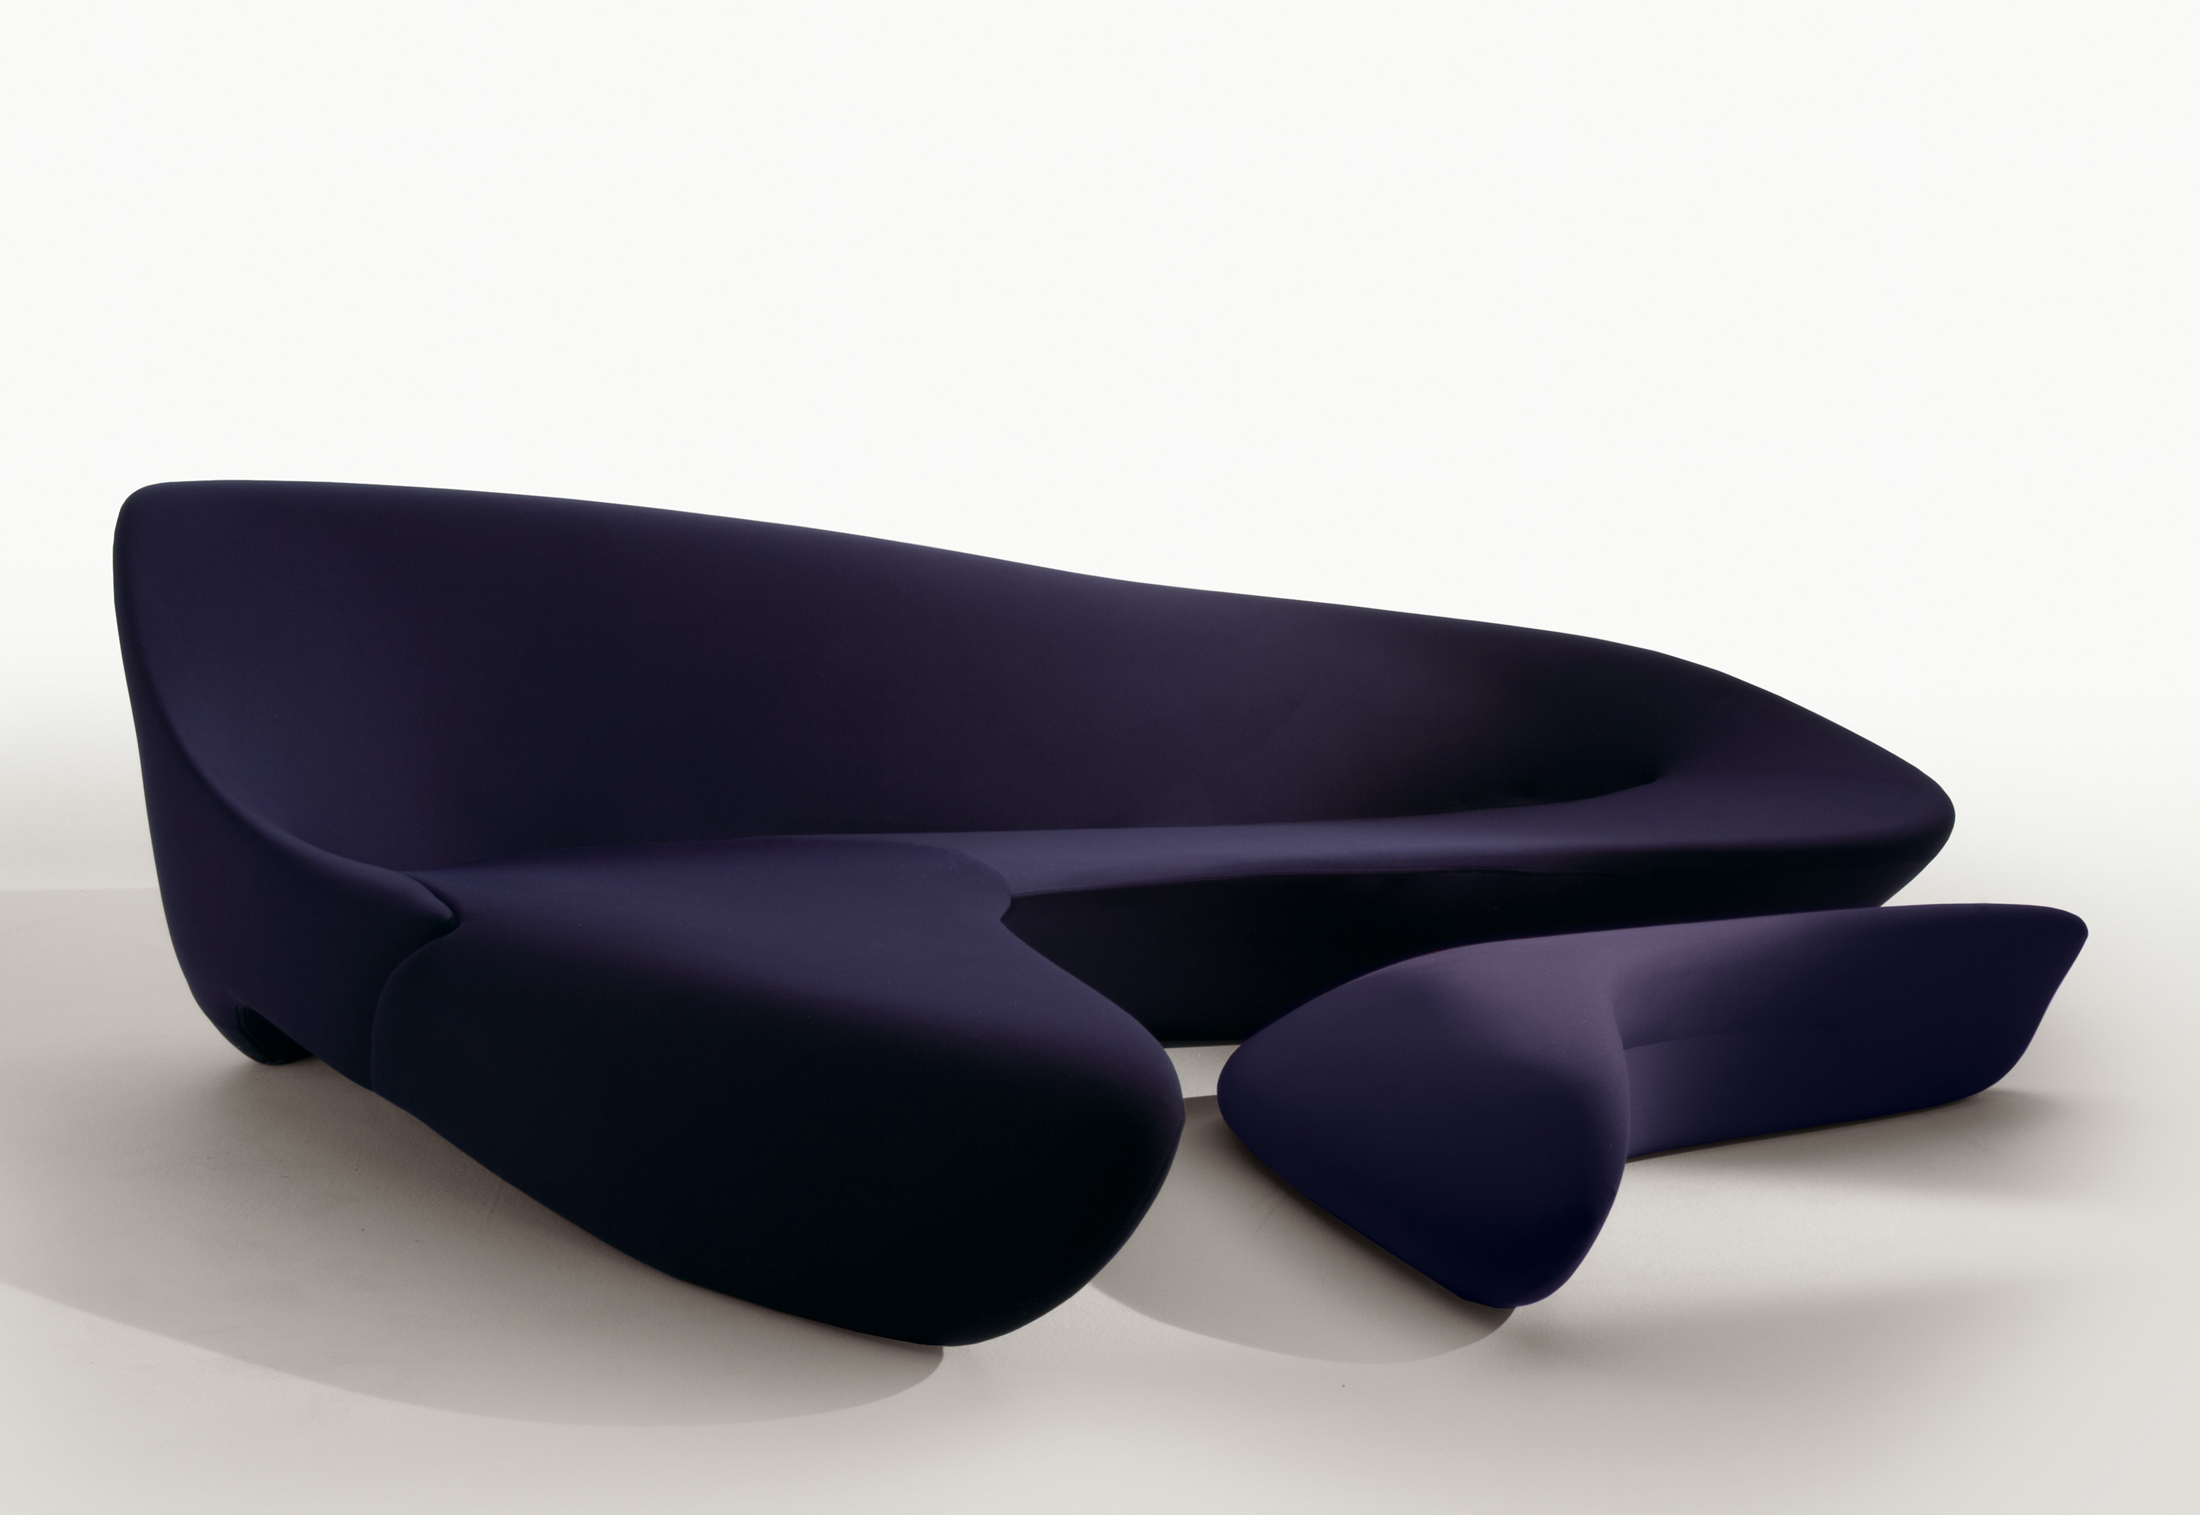 Moon System sofa by Zaha Hadid